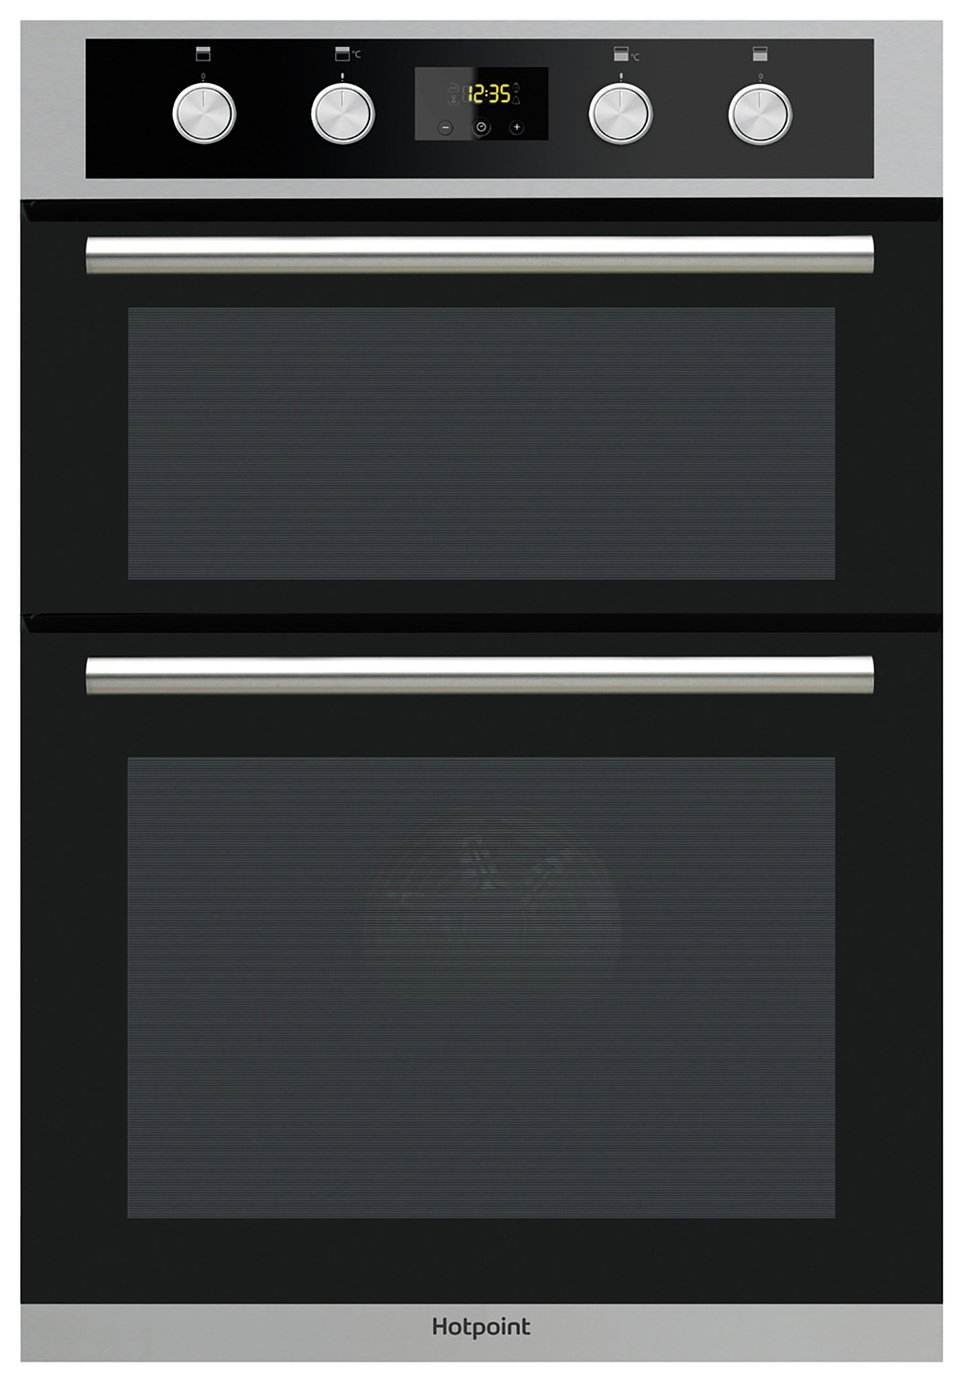 hotpoint dd2844cix built in electric double oven 409. Black Bedroom Furniture Sets. Home Design Ideas